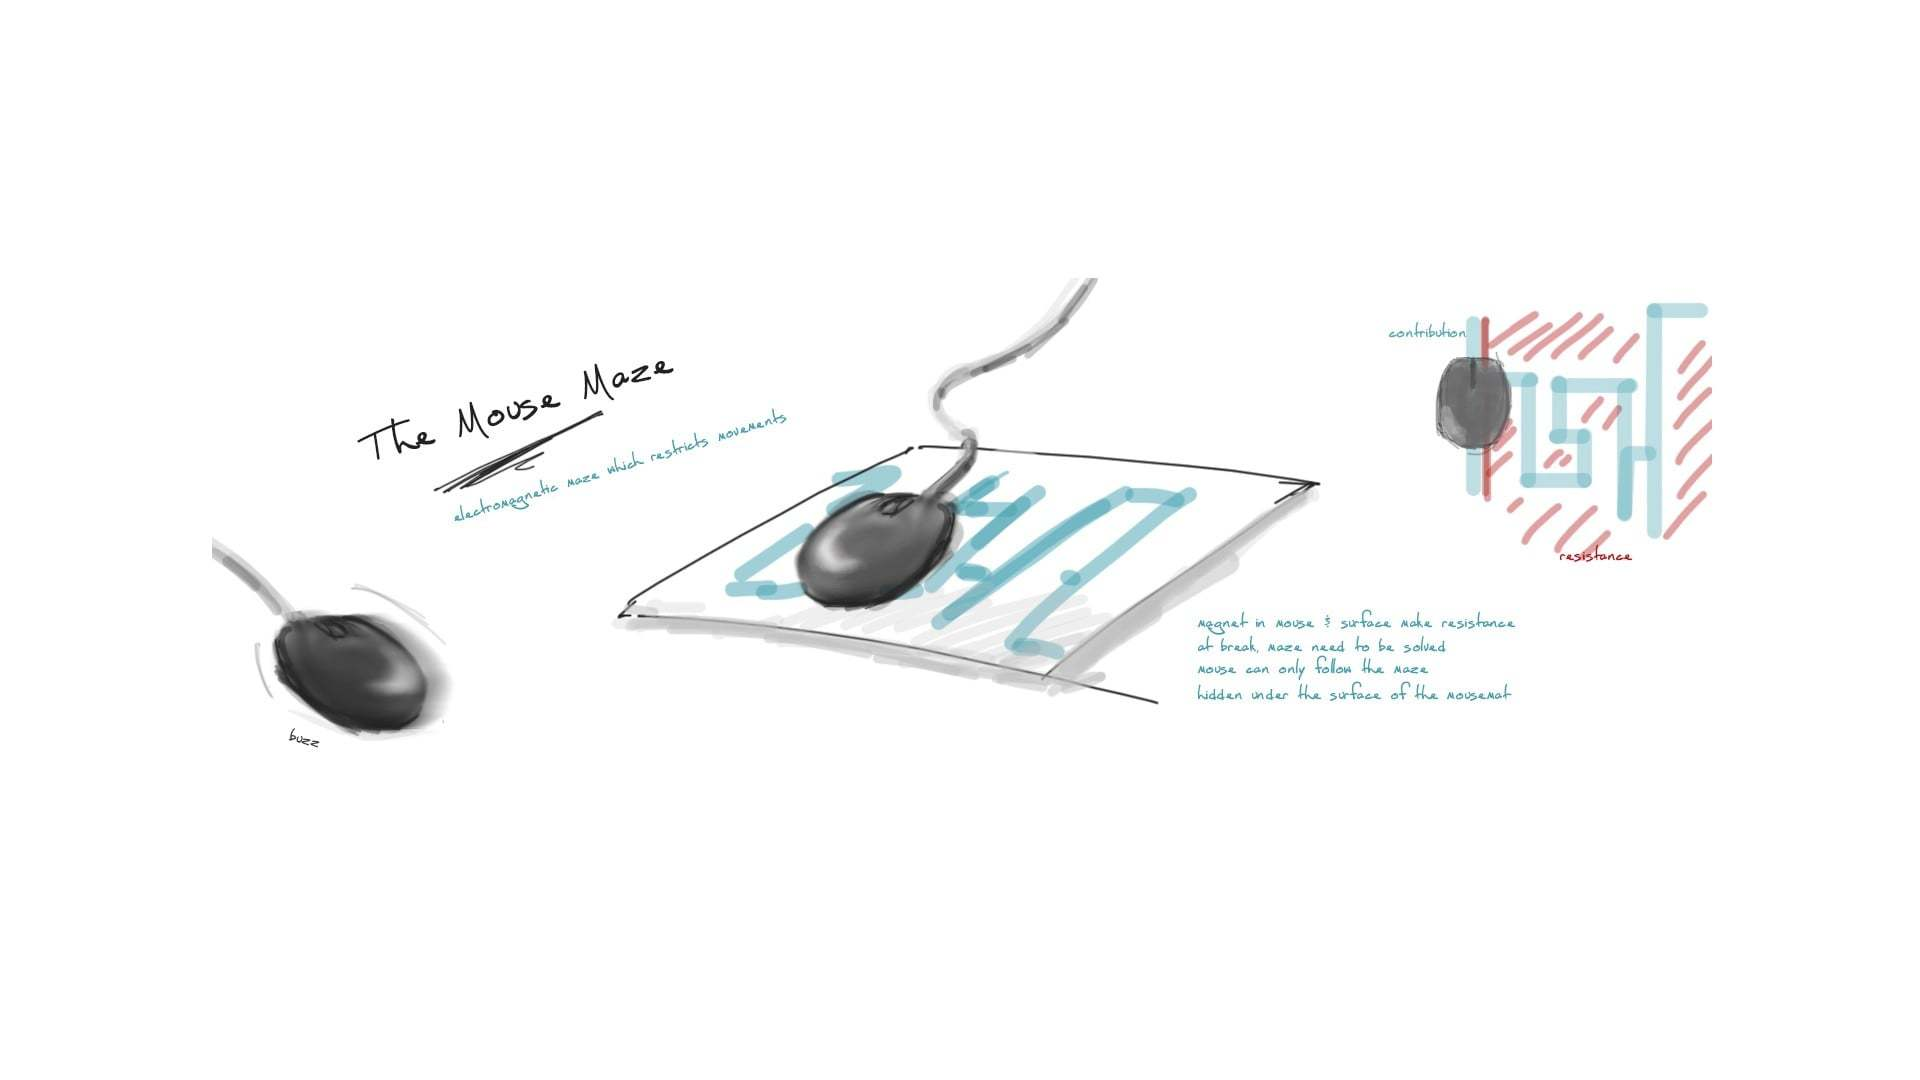 Magnetic Mouse Concept